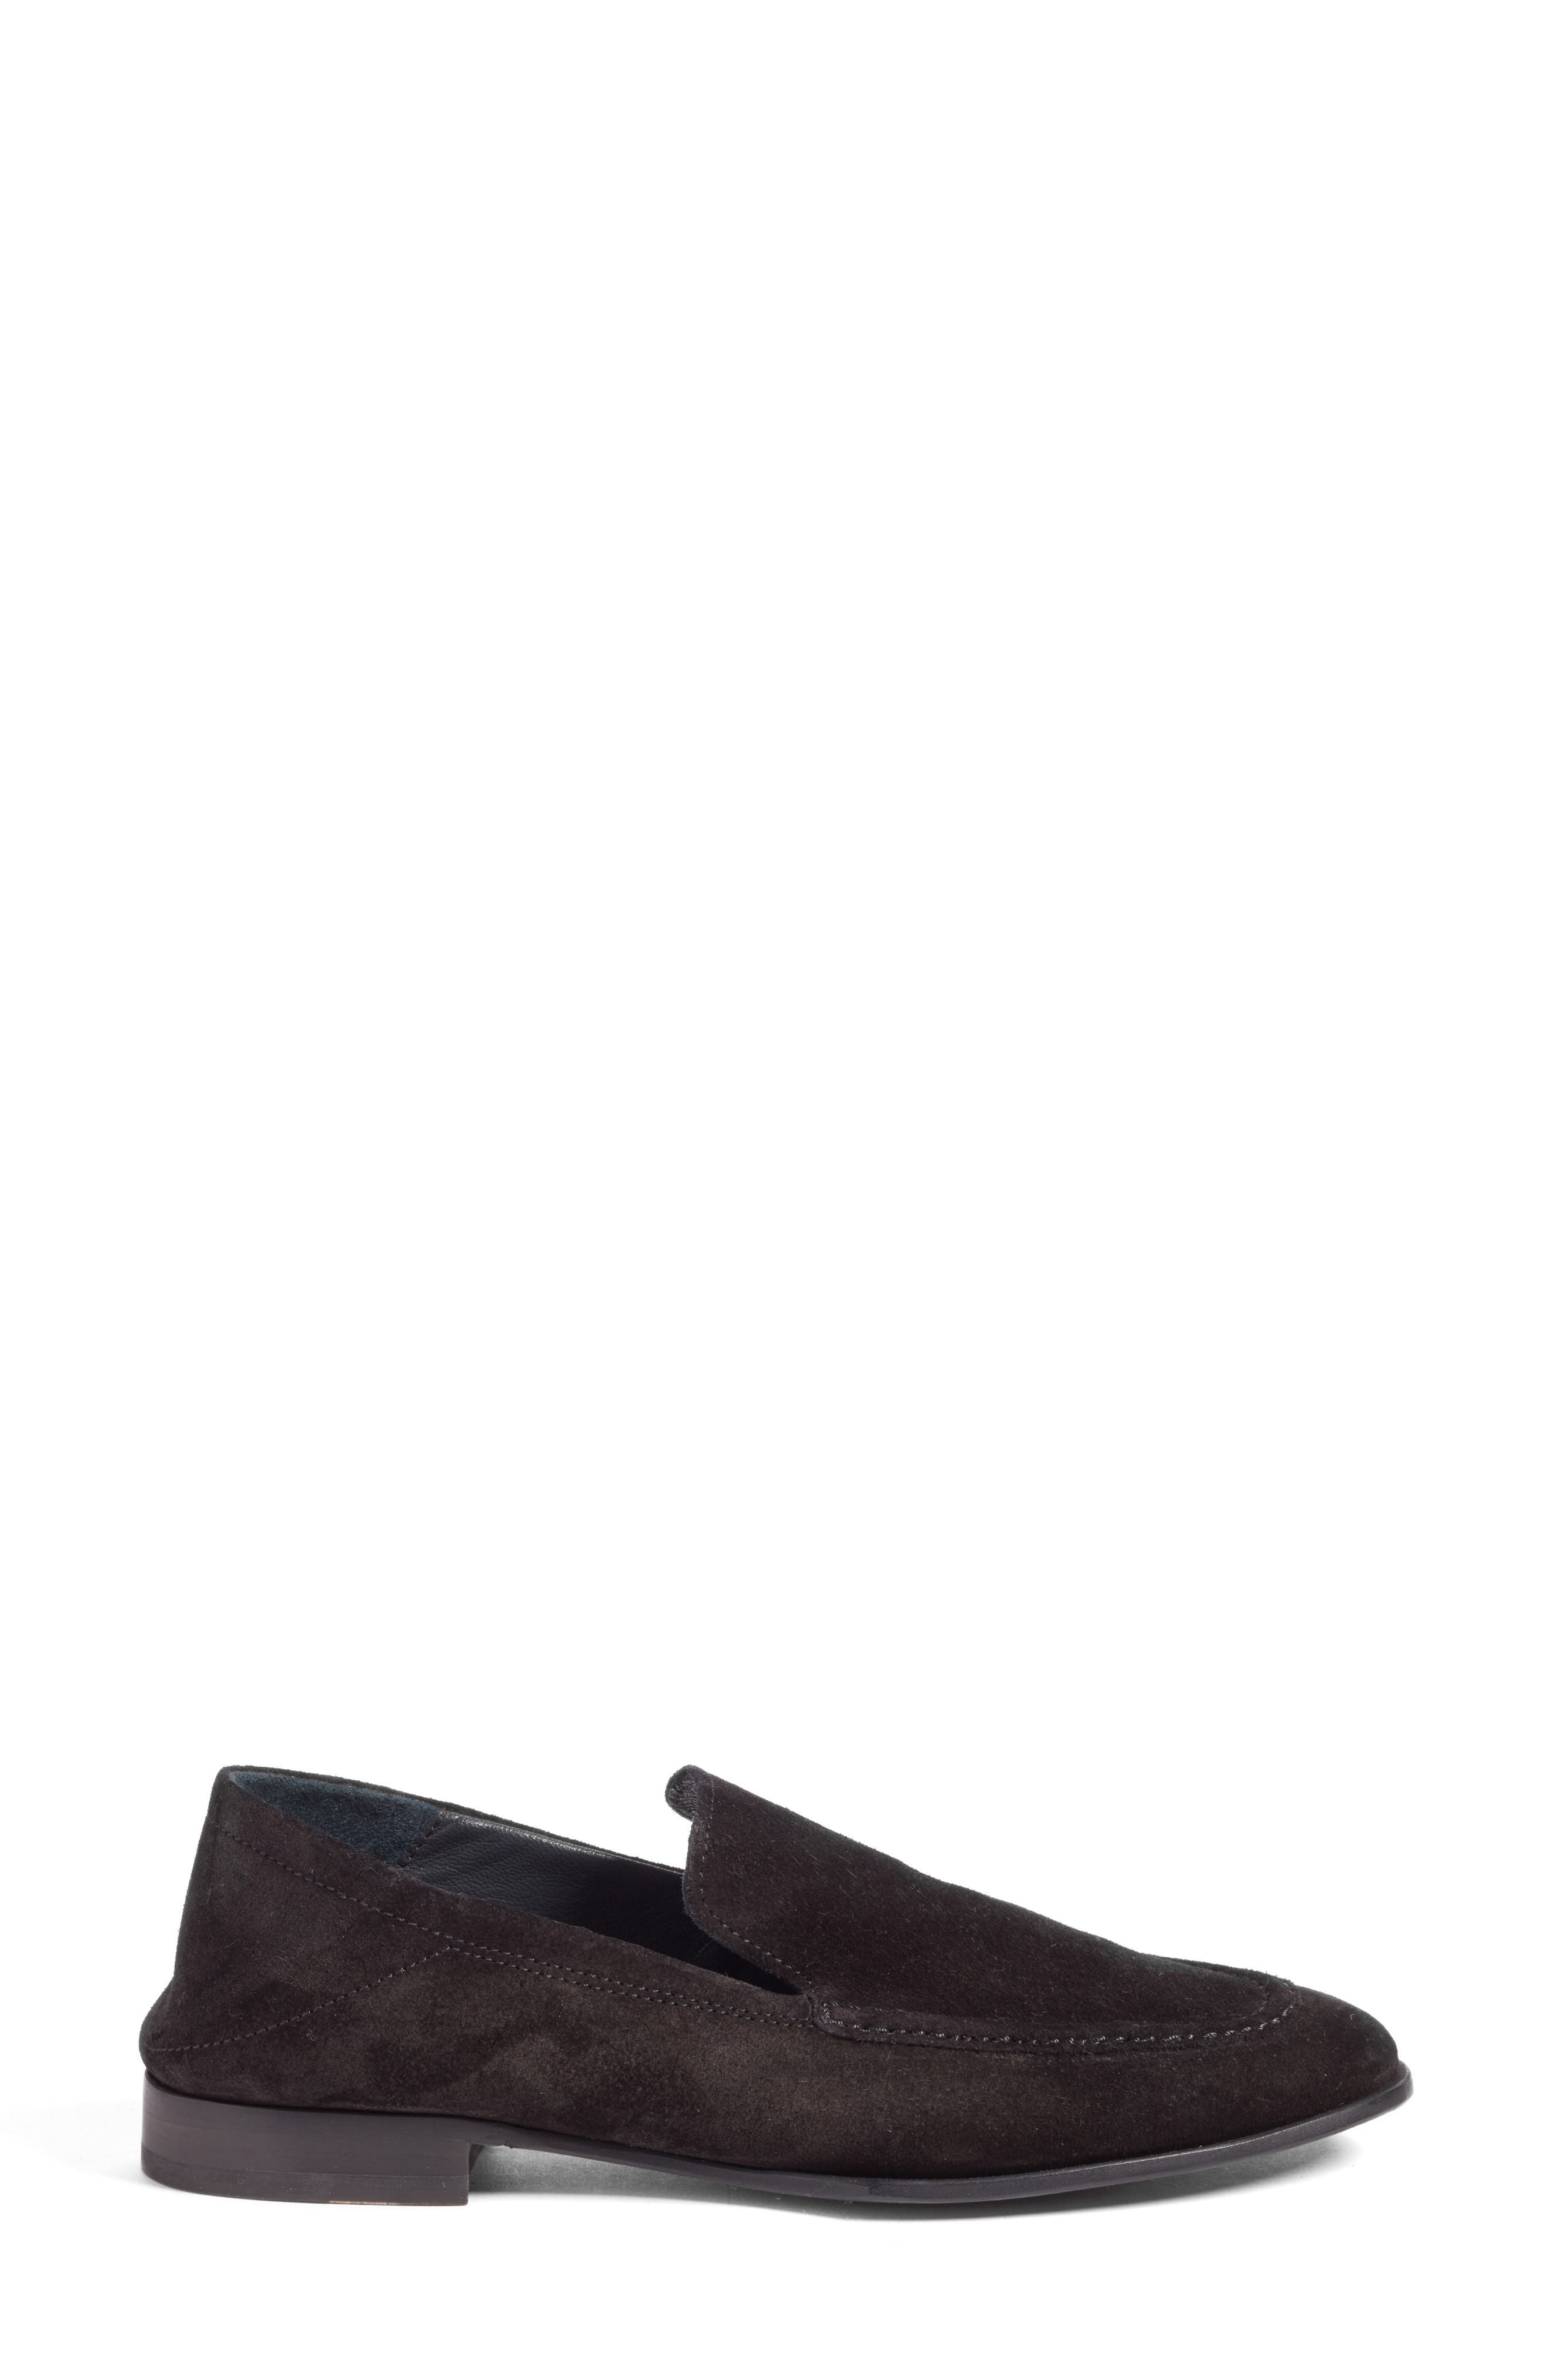 Alix Convertible Loafer,                             Alternate thumbnail 2, color,                             008